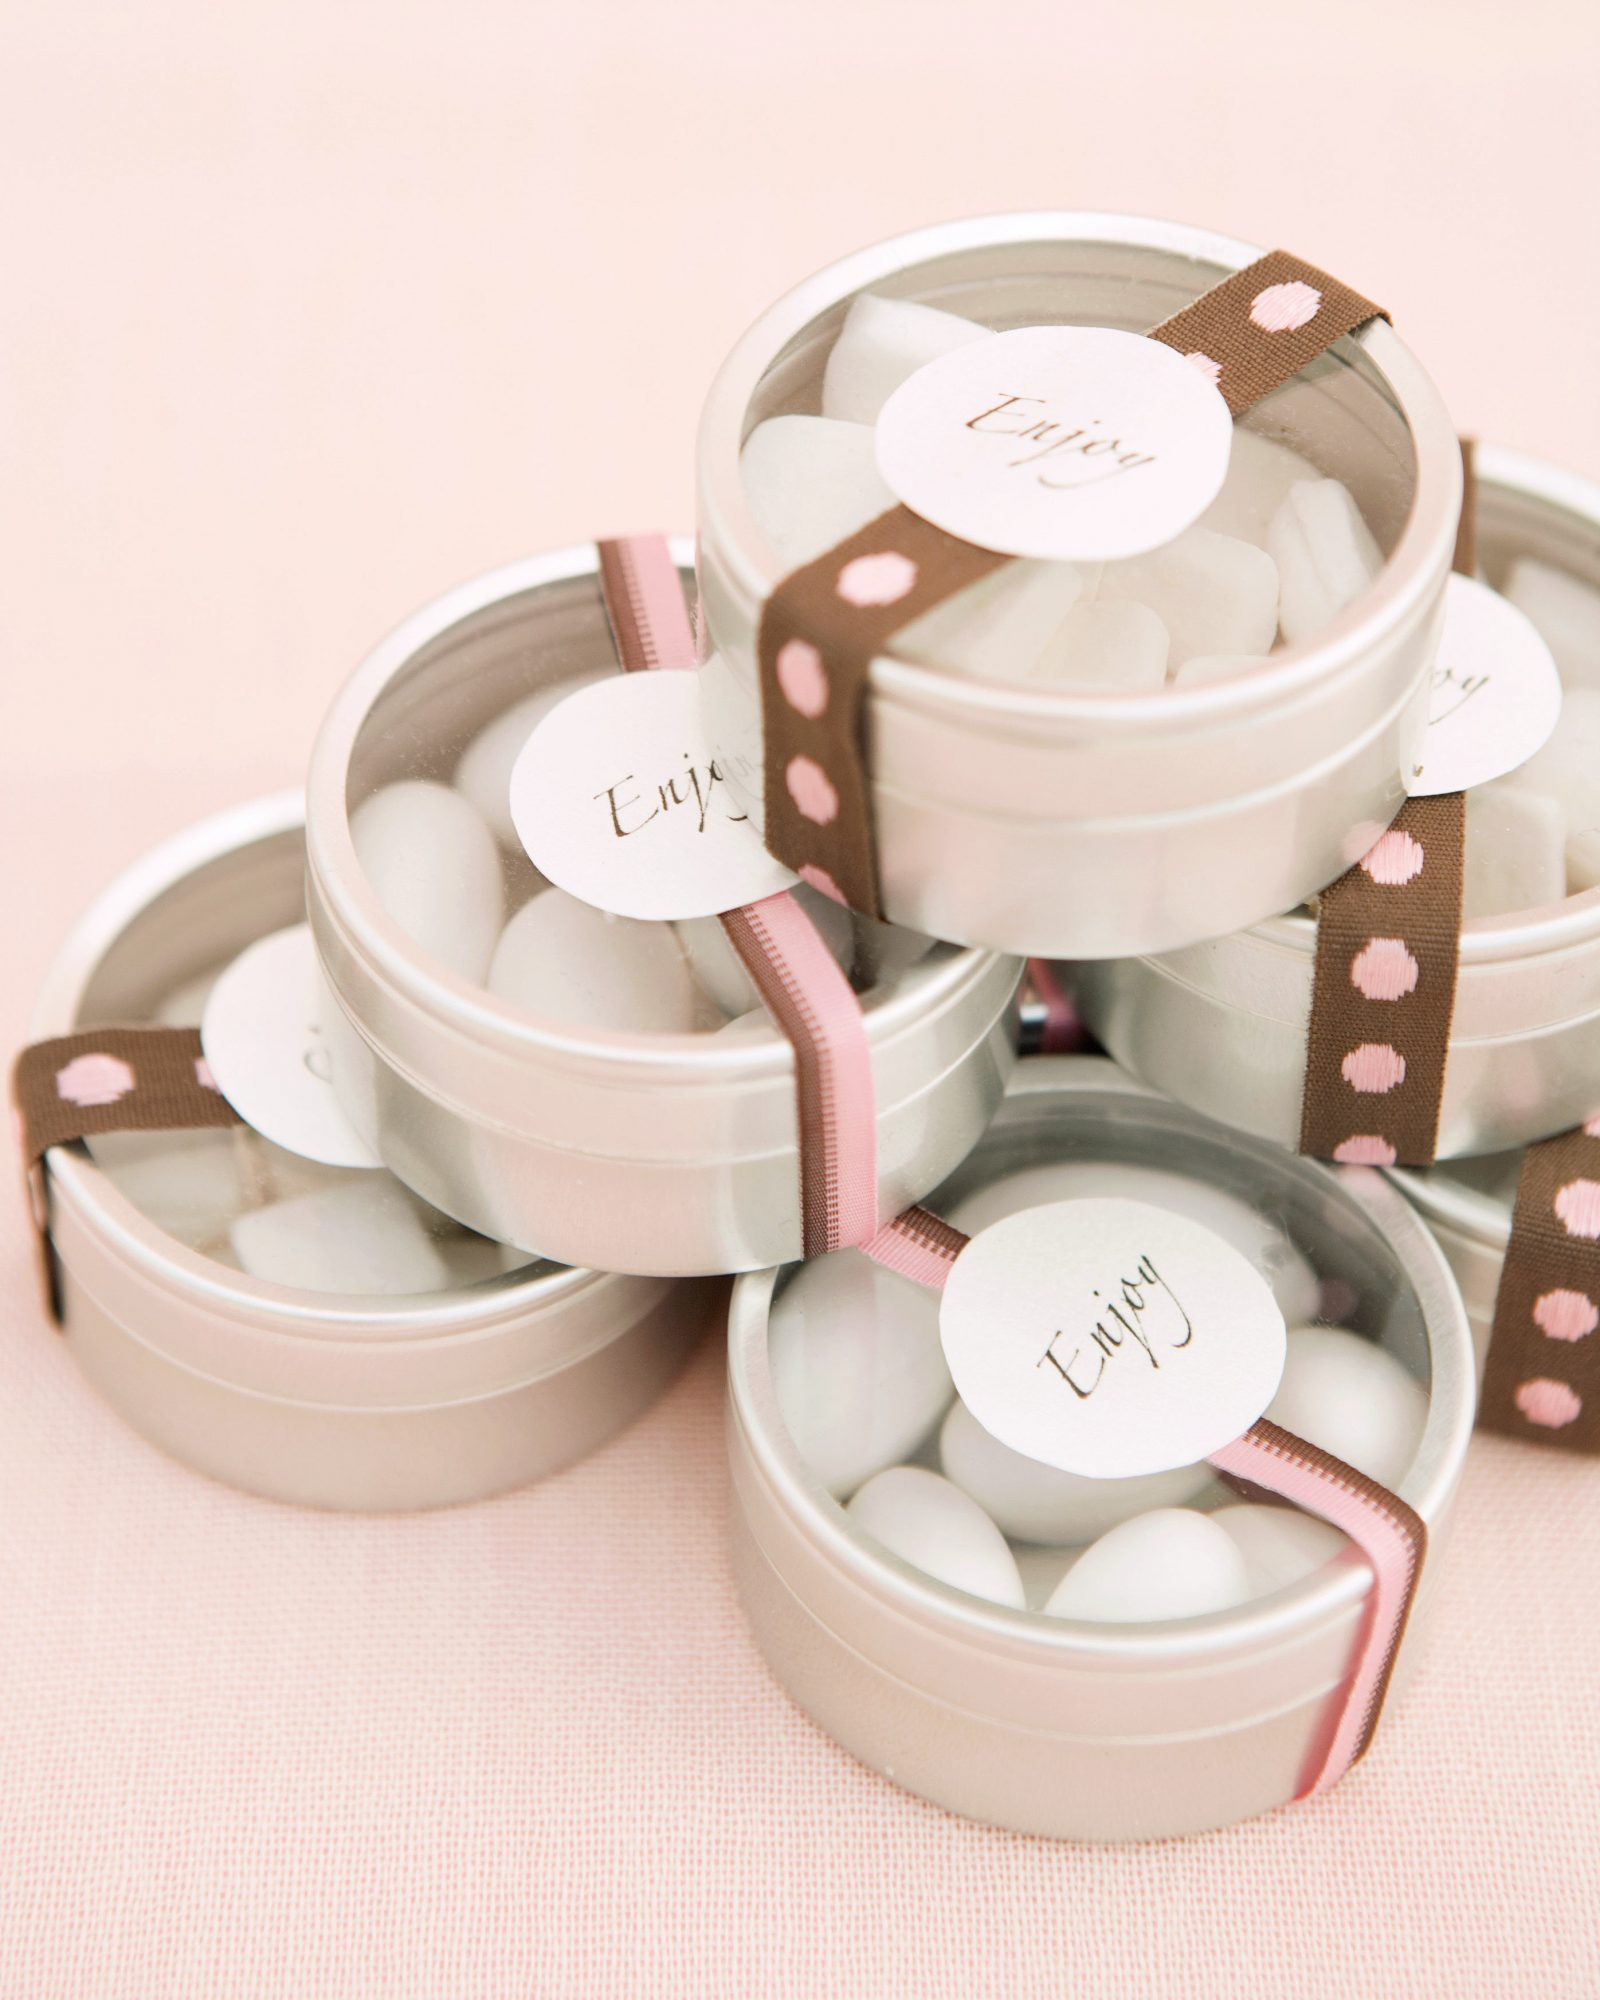 out-of-date-wedding-favors-0316.jpg